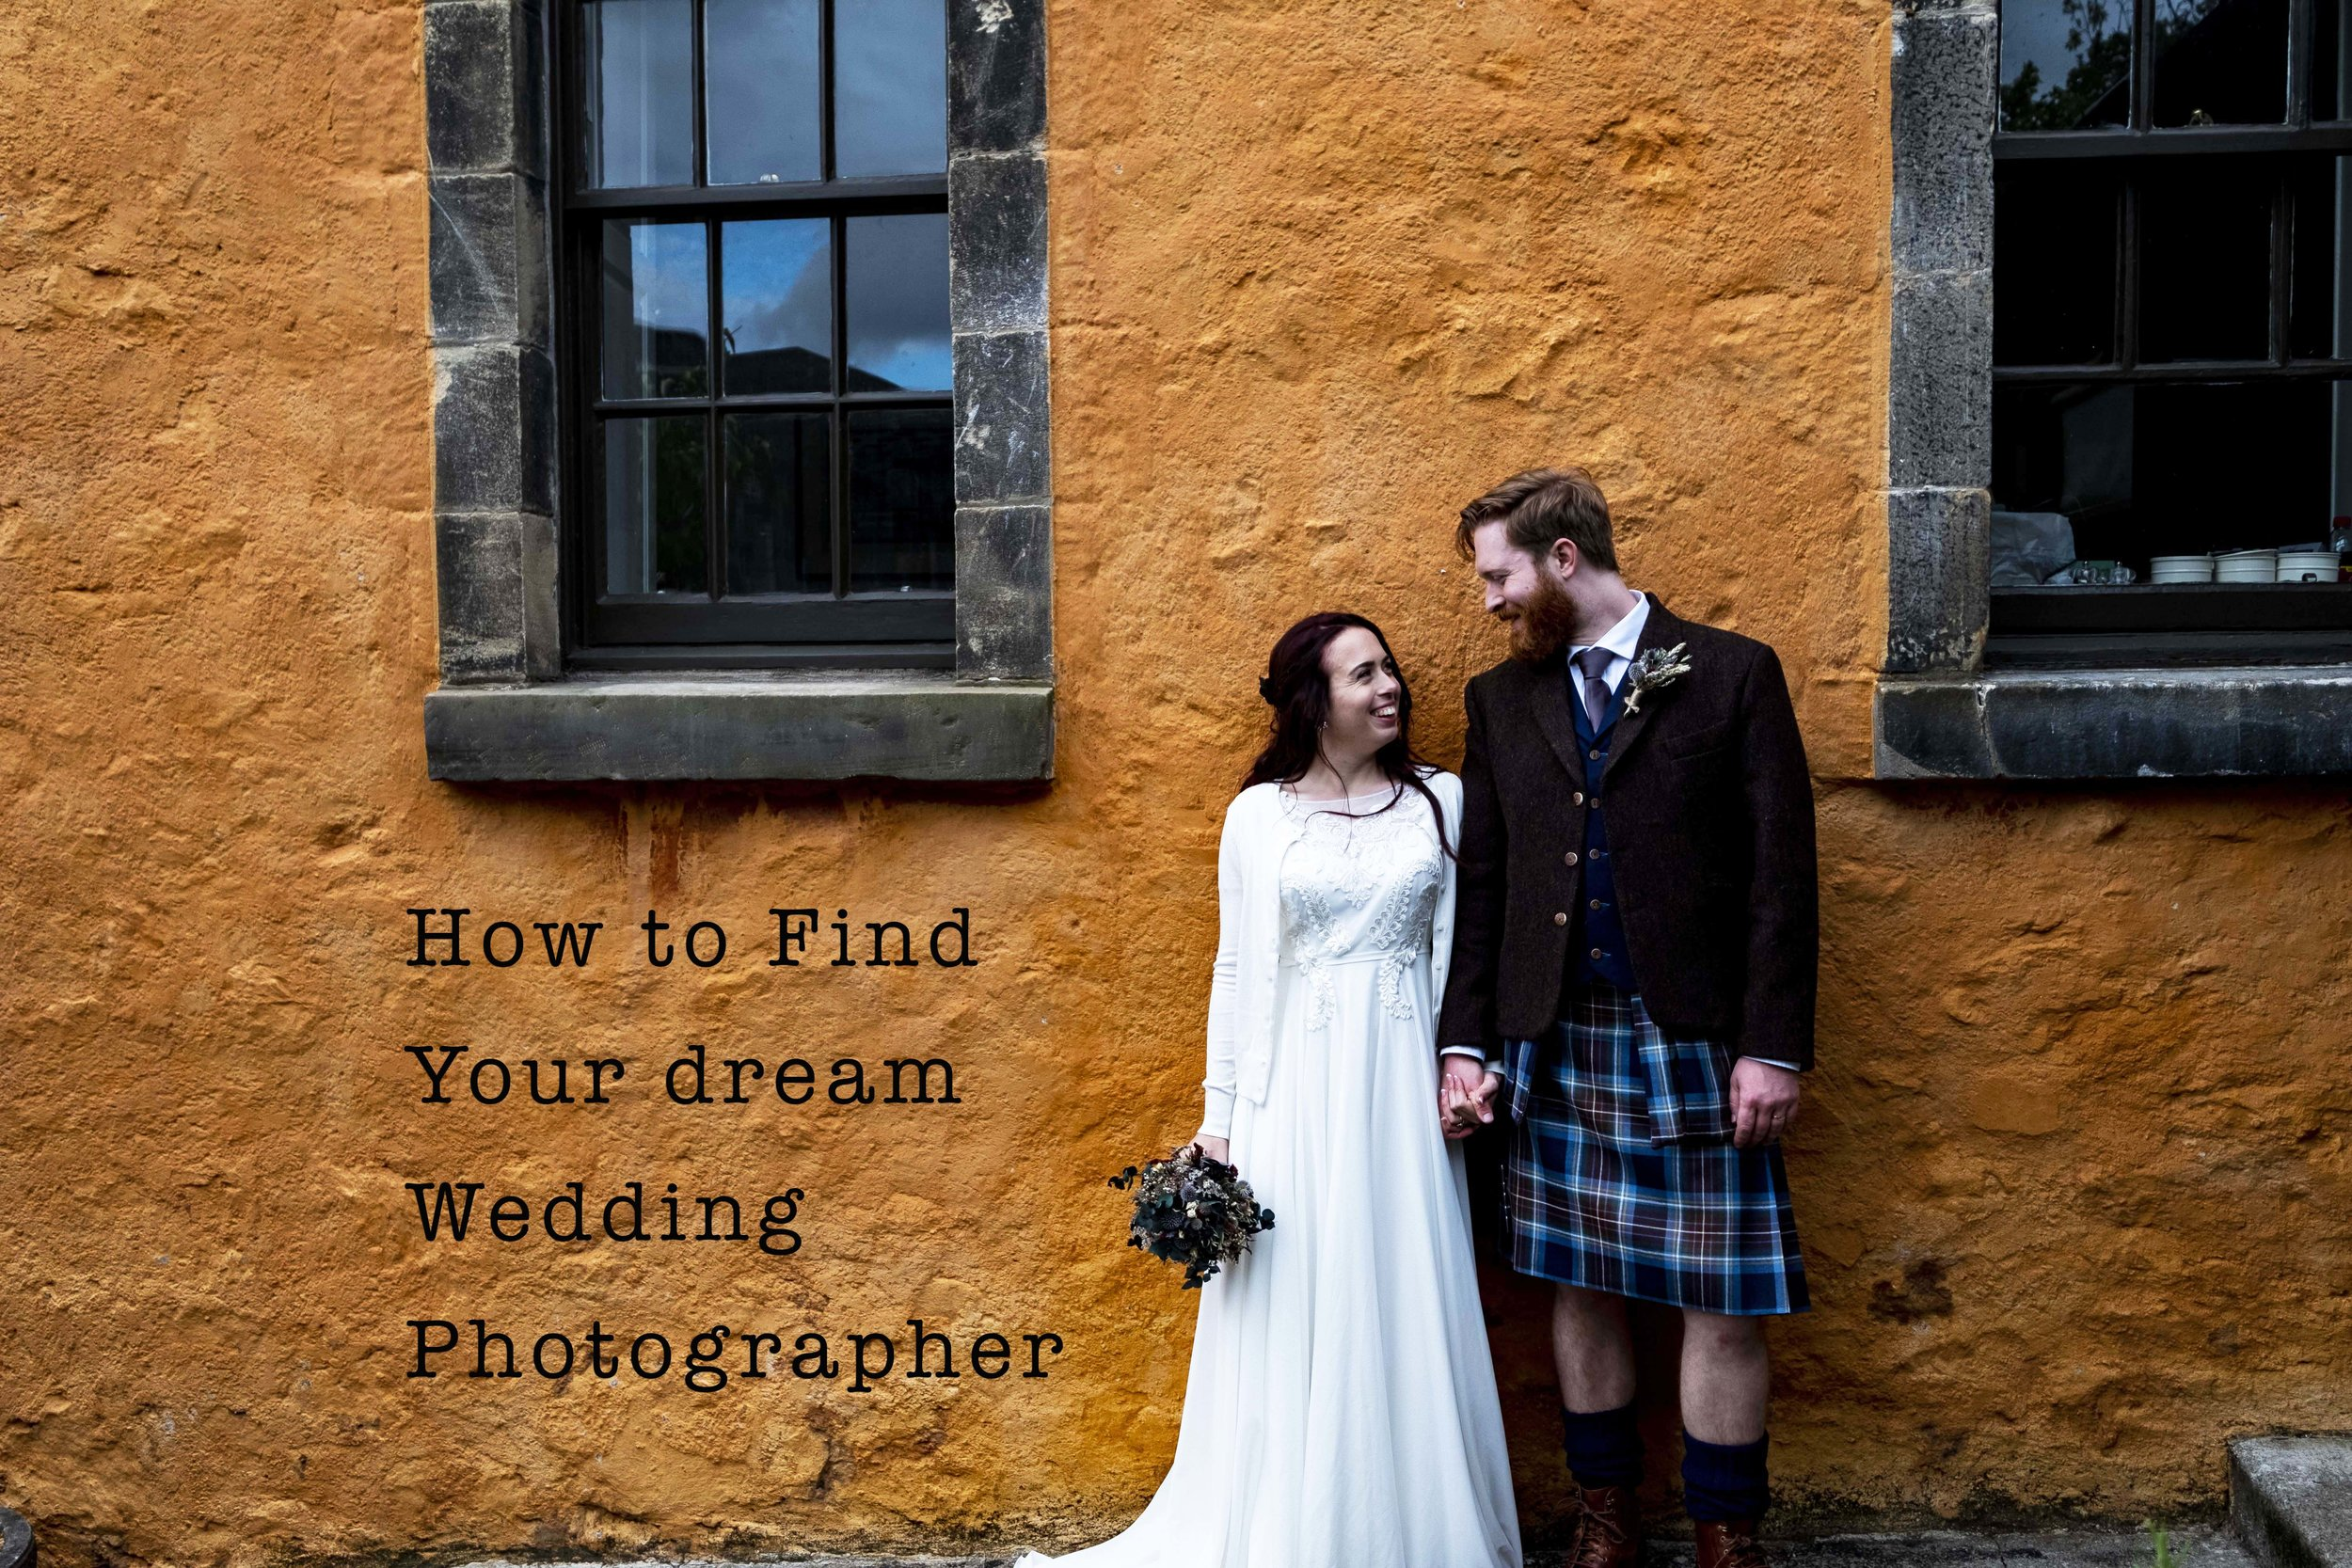 How to find a dream wedding photographer.